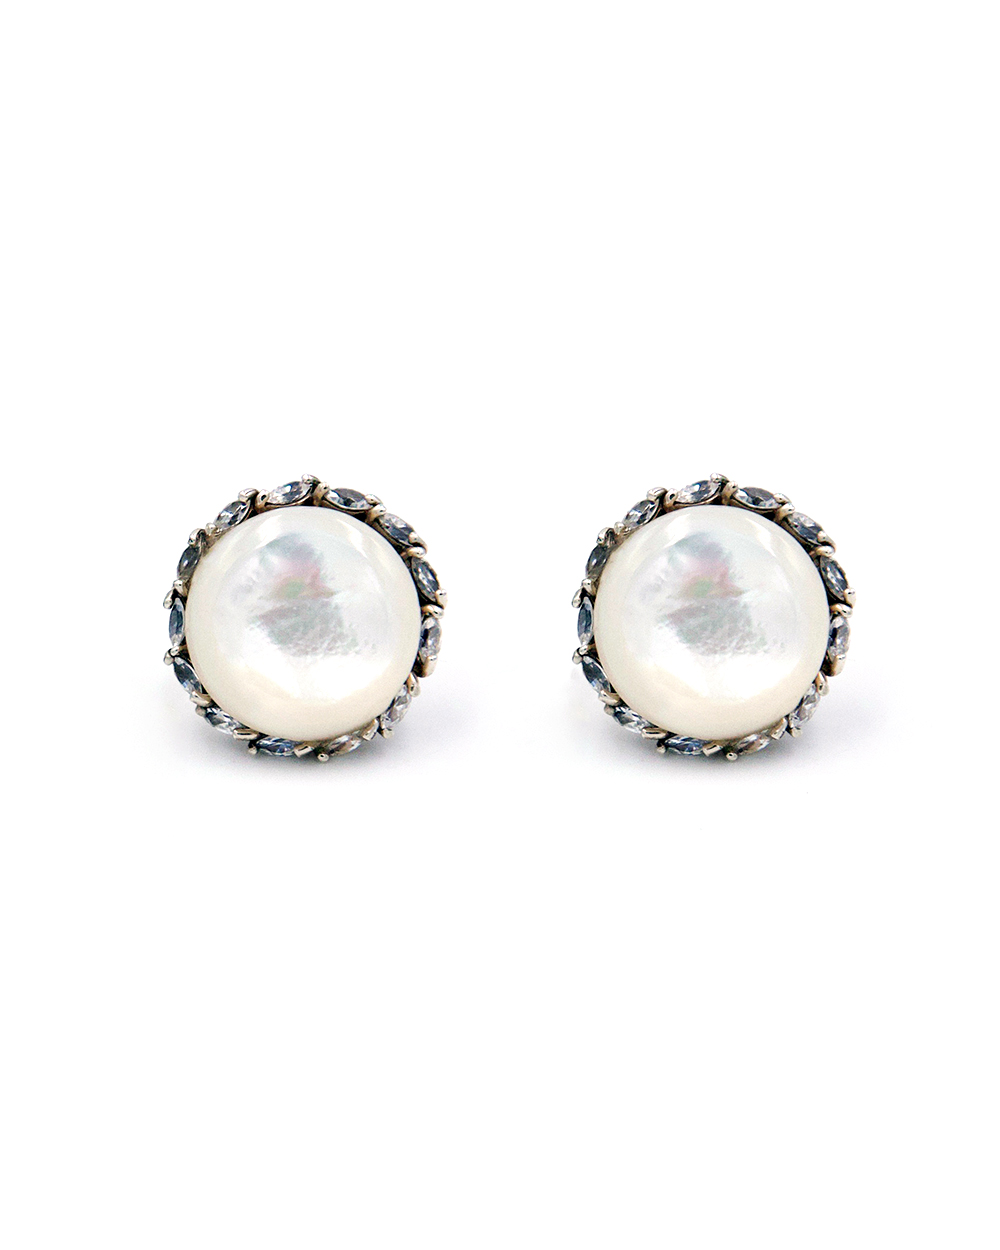 EVENING PEARL EARRINGS